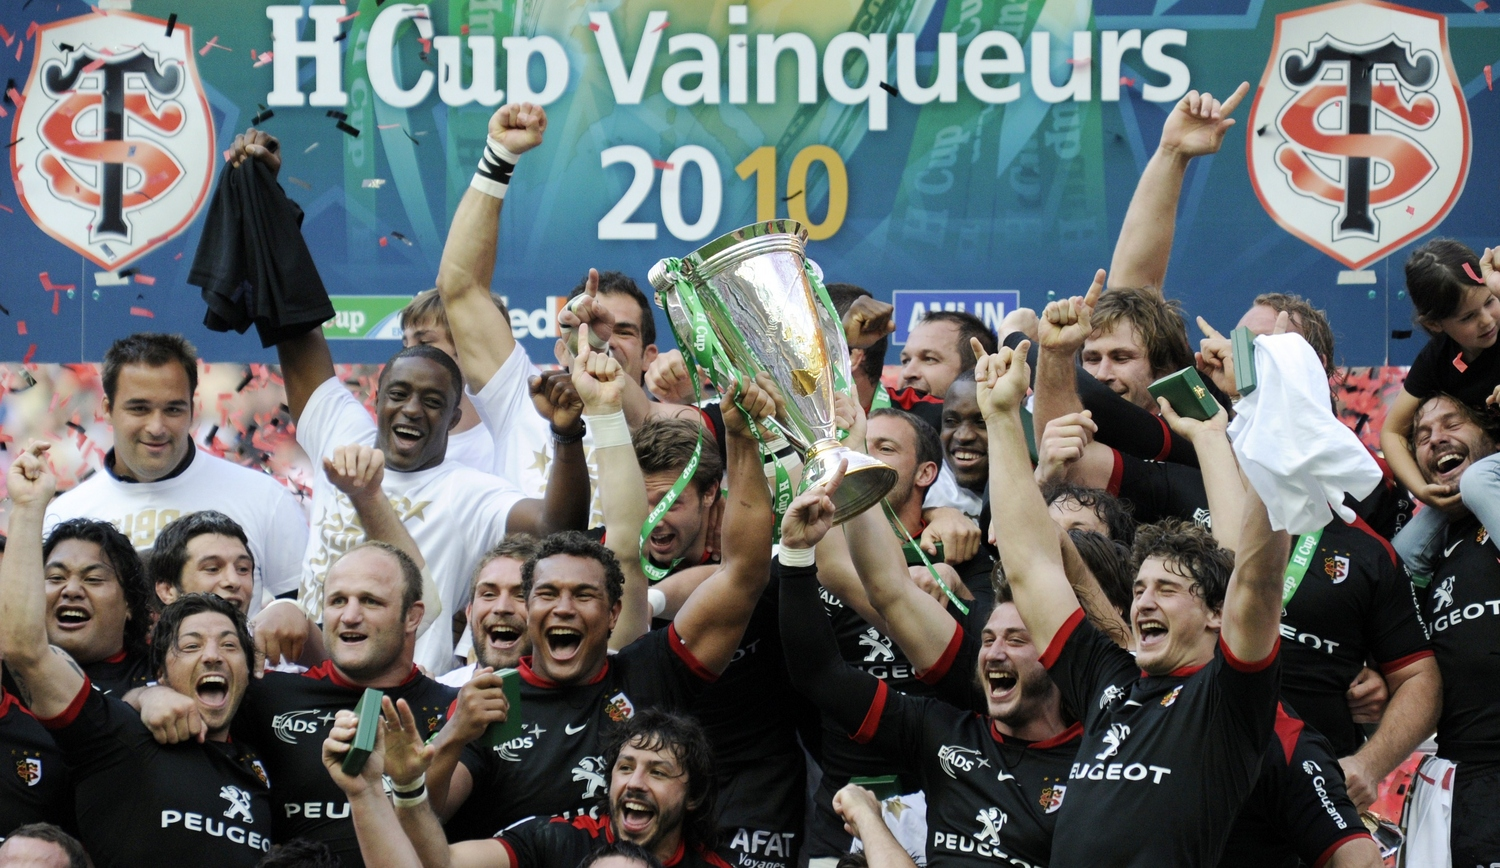 As the excitement builds towards the draws for next season's Champions Cup and Challenge Cup competitions